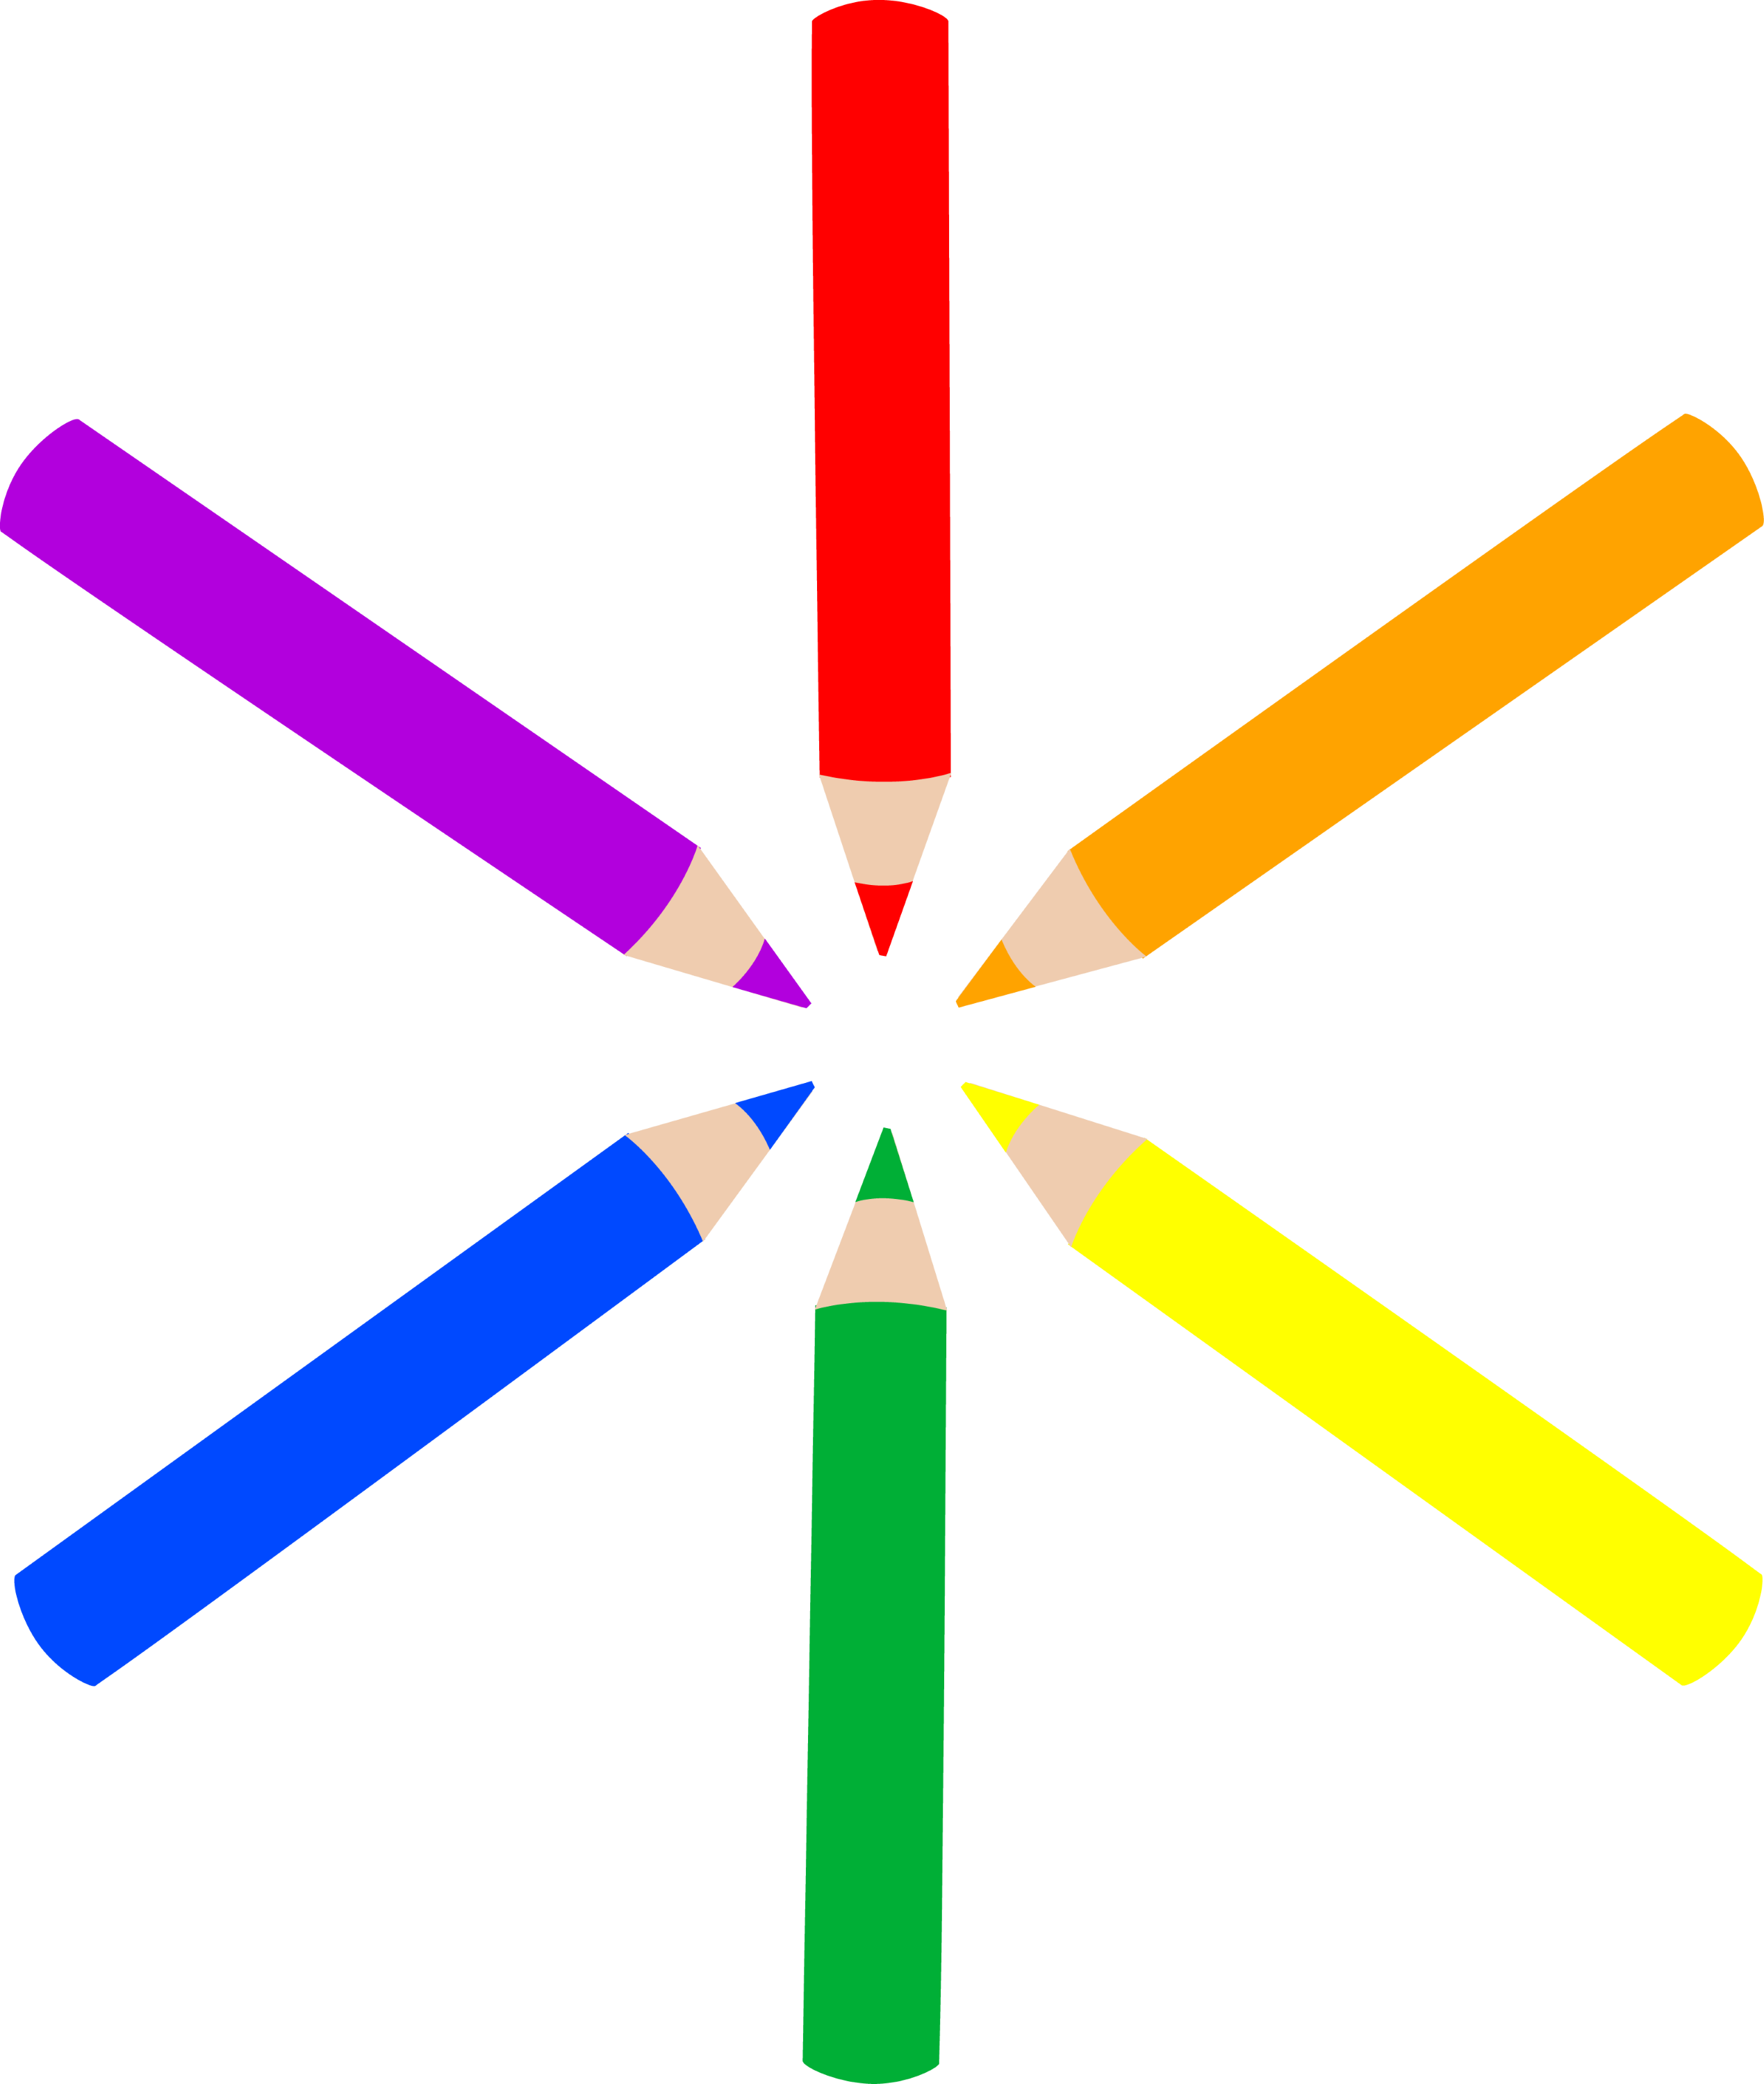 Pattern of Mini Colored Pencils - Free Clip Art